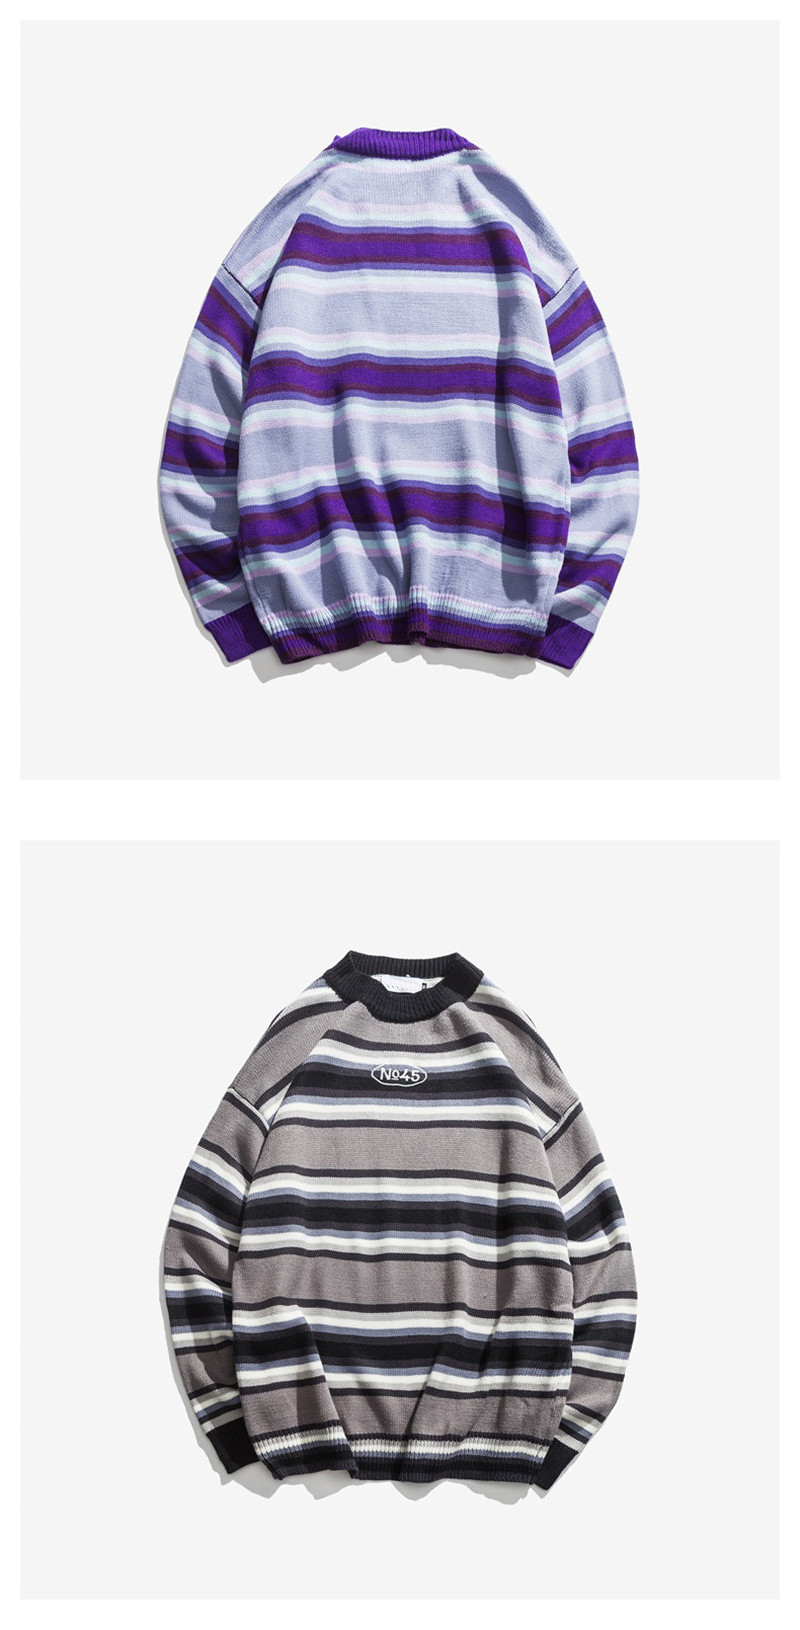 Knitted Japanese Harajuku Style Striped Sweater for Men Urban Boys Street Wear Crewneck Embroidery Pullover Jumper Oversized 8